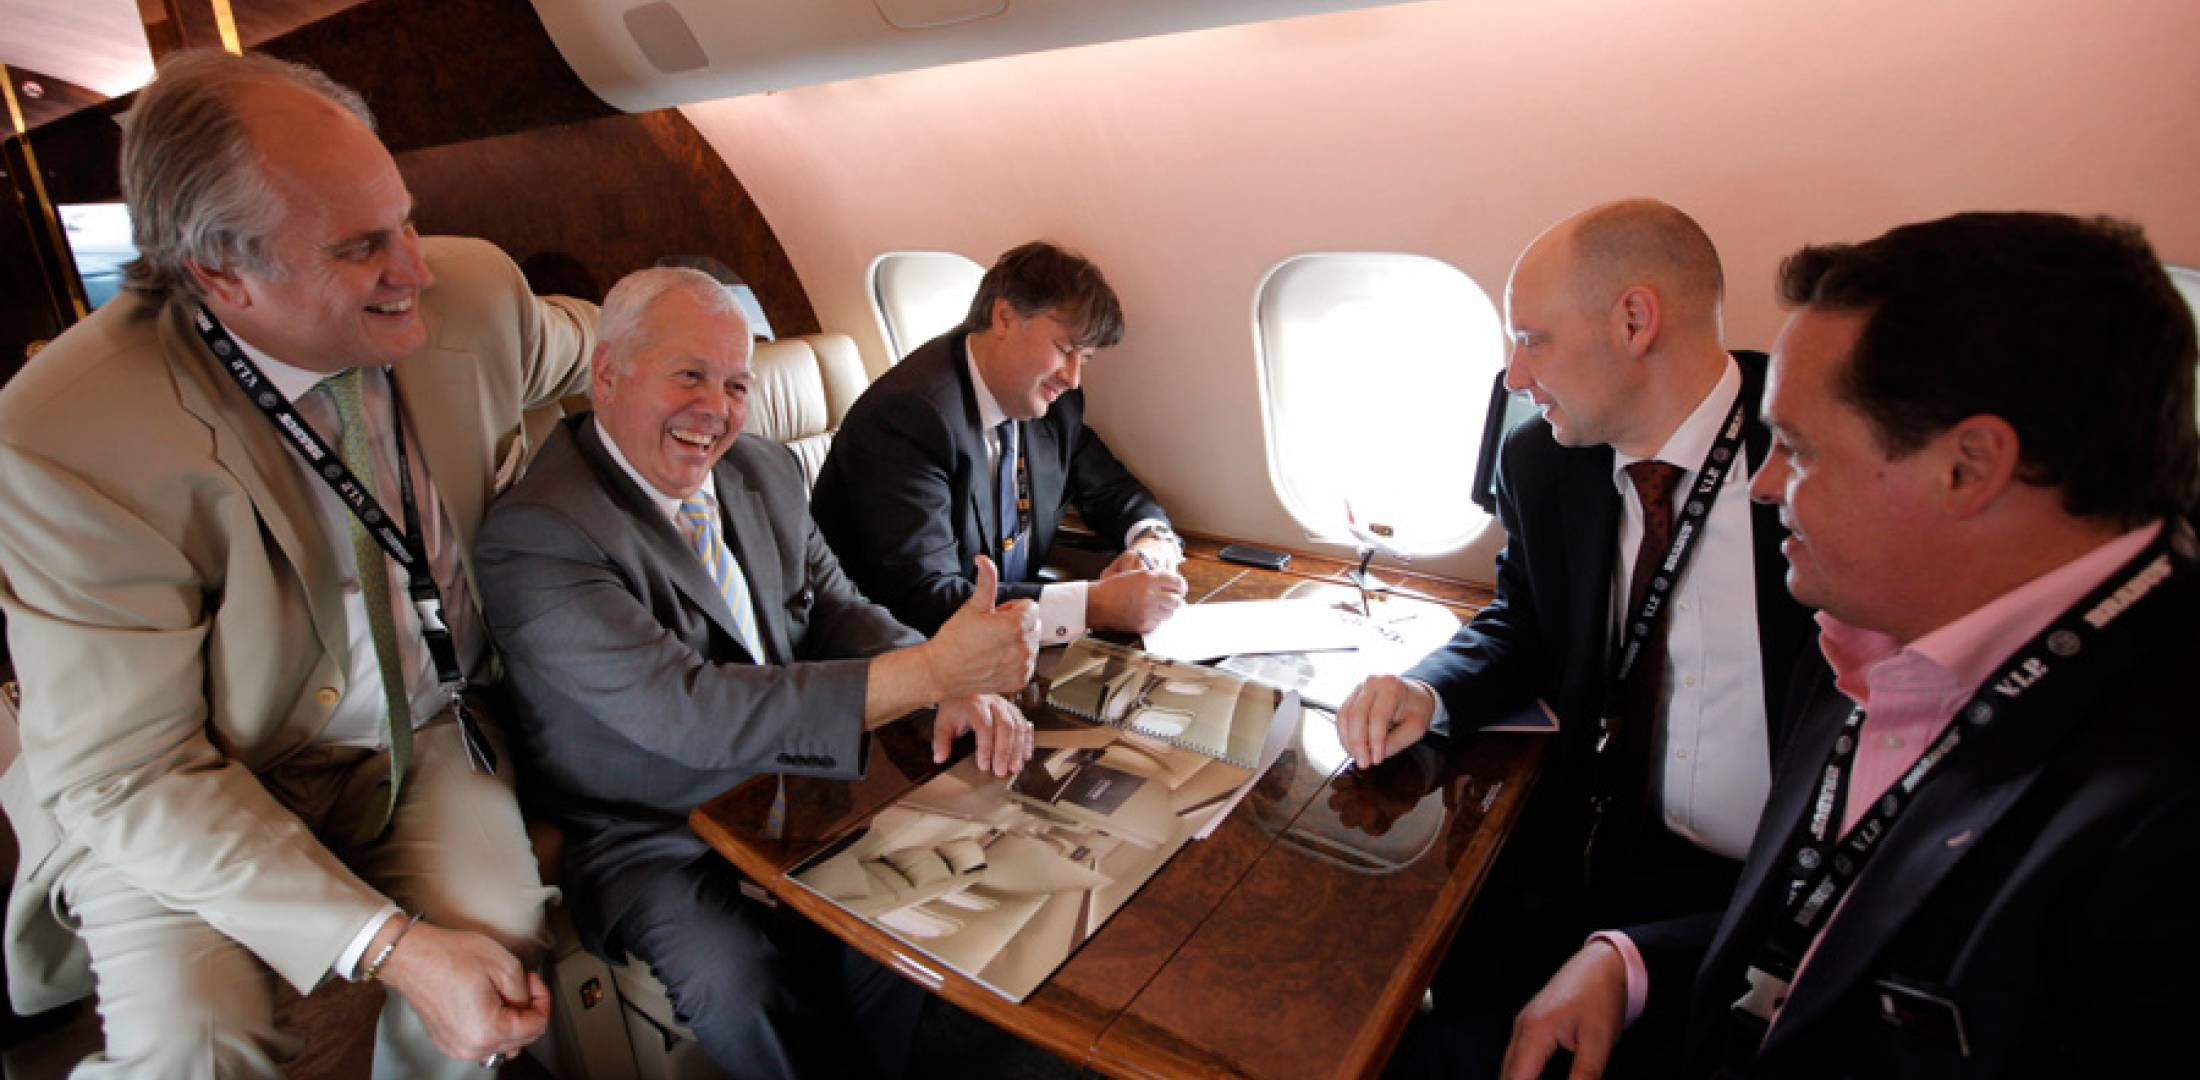 Pictured (l-r) are Rolf Smith, Viation sales director; Pat McHaffey, managing director of Viation UK; Greg Thomas, PrivatAir CEO; Christian Hatje, PrivatAir v-p business aviation; and Nick McHaffey, director of Viation UAE.